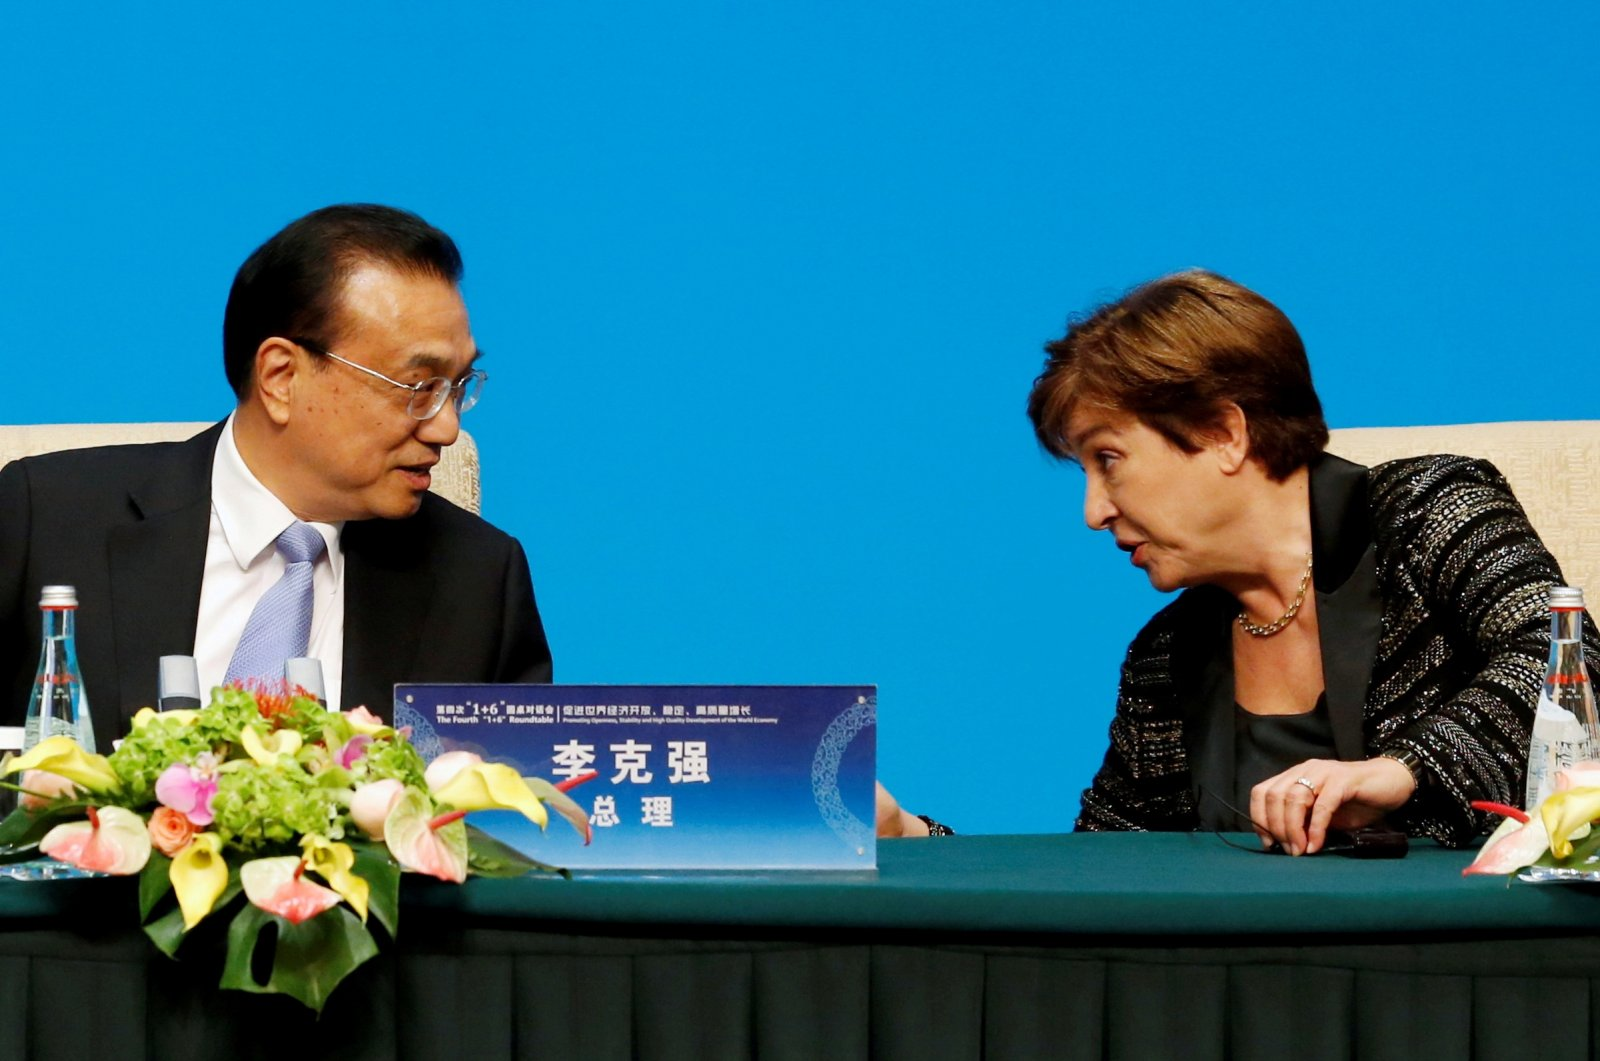 """International Monetary Fund (IMF) Managing Director Kristalina Georgieva talks to Chinese Premier Li Keqiang before a news conference following the """"1 6"""" Roundtable meeting at the Diaoyutai state guesthouse in Beijing, China, Nov. 21, 2019. (Reuters Photo)"""